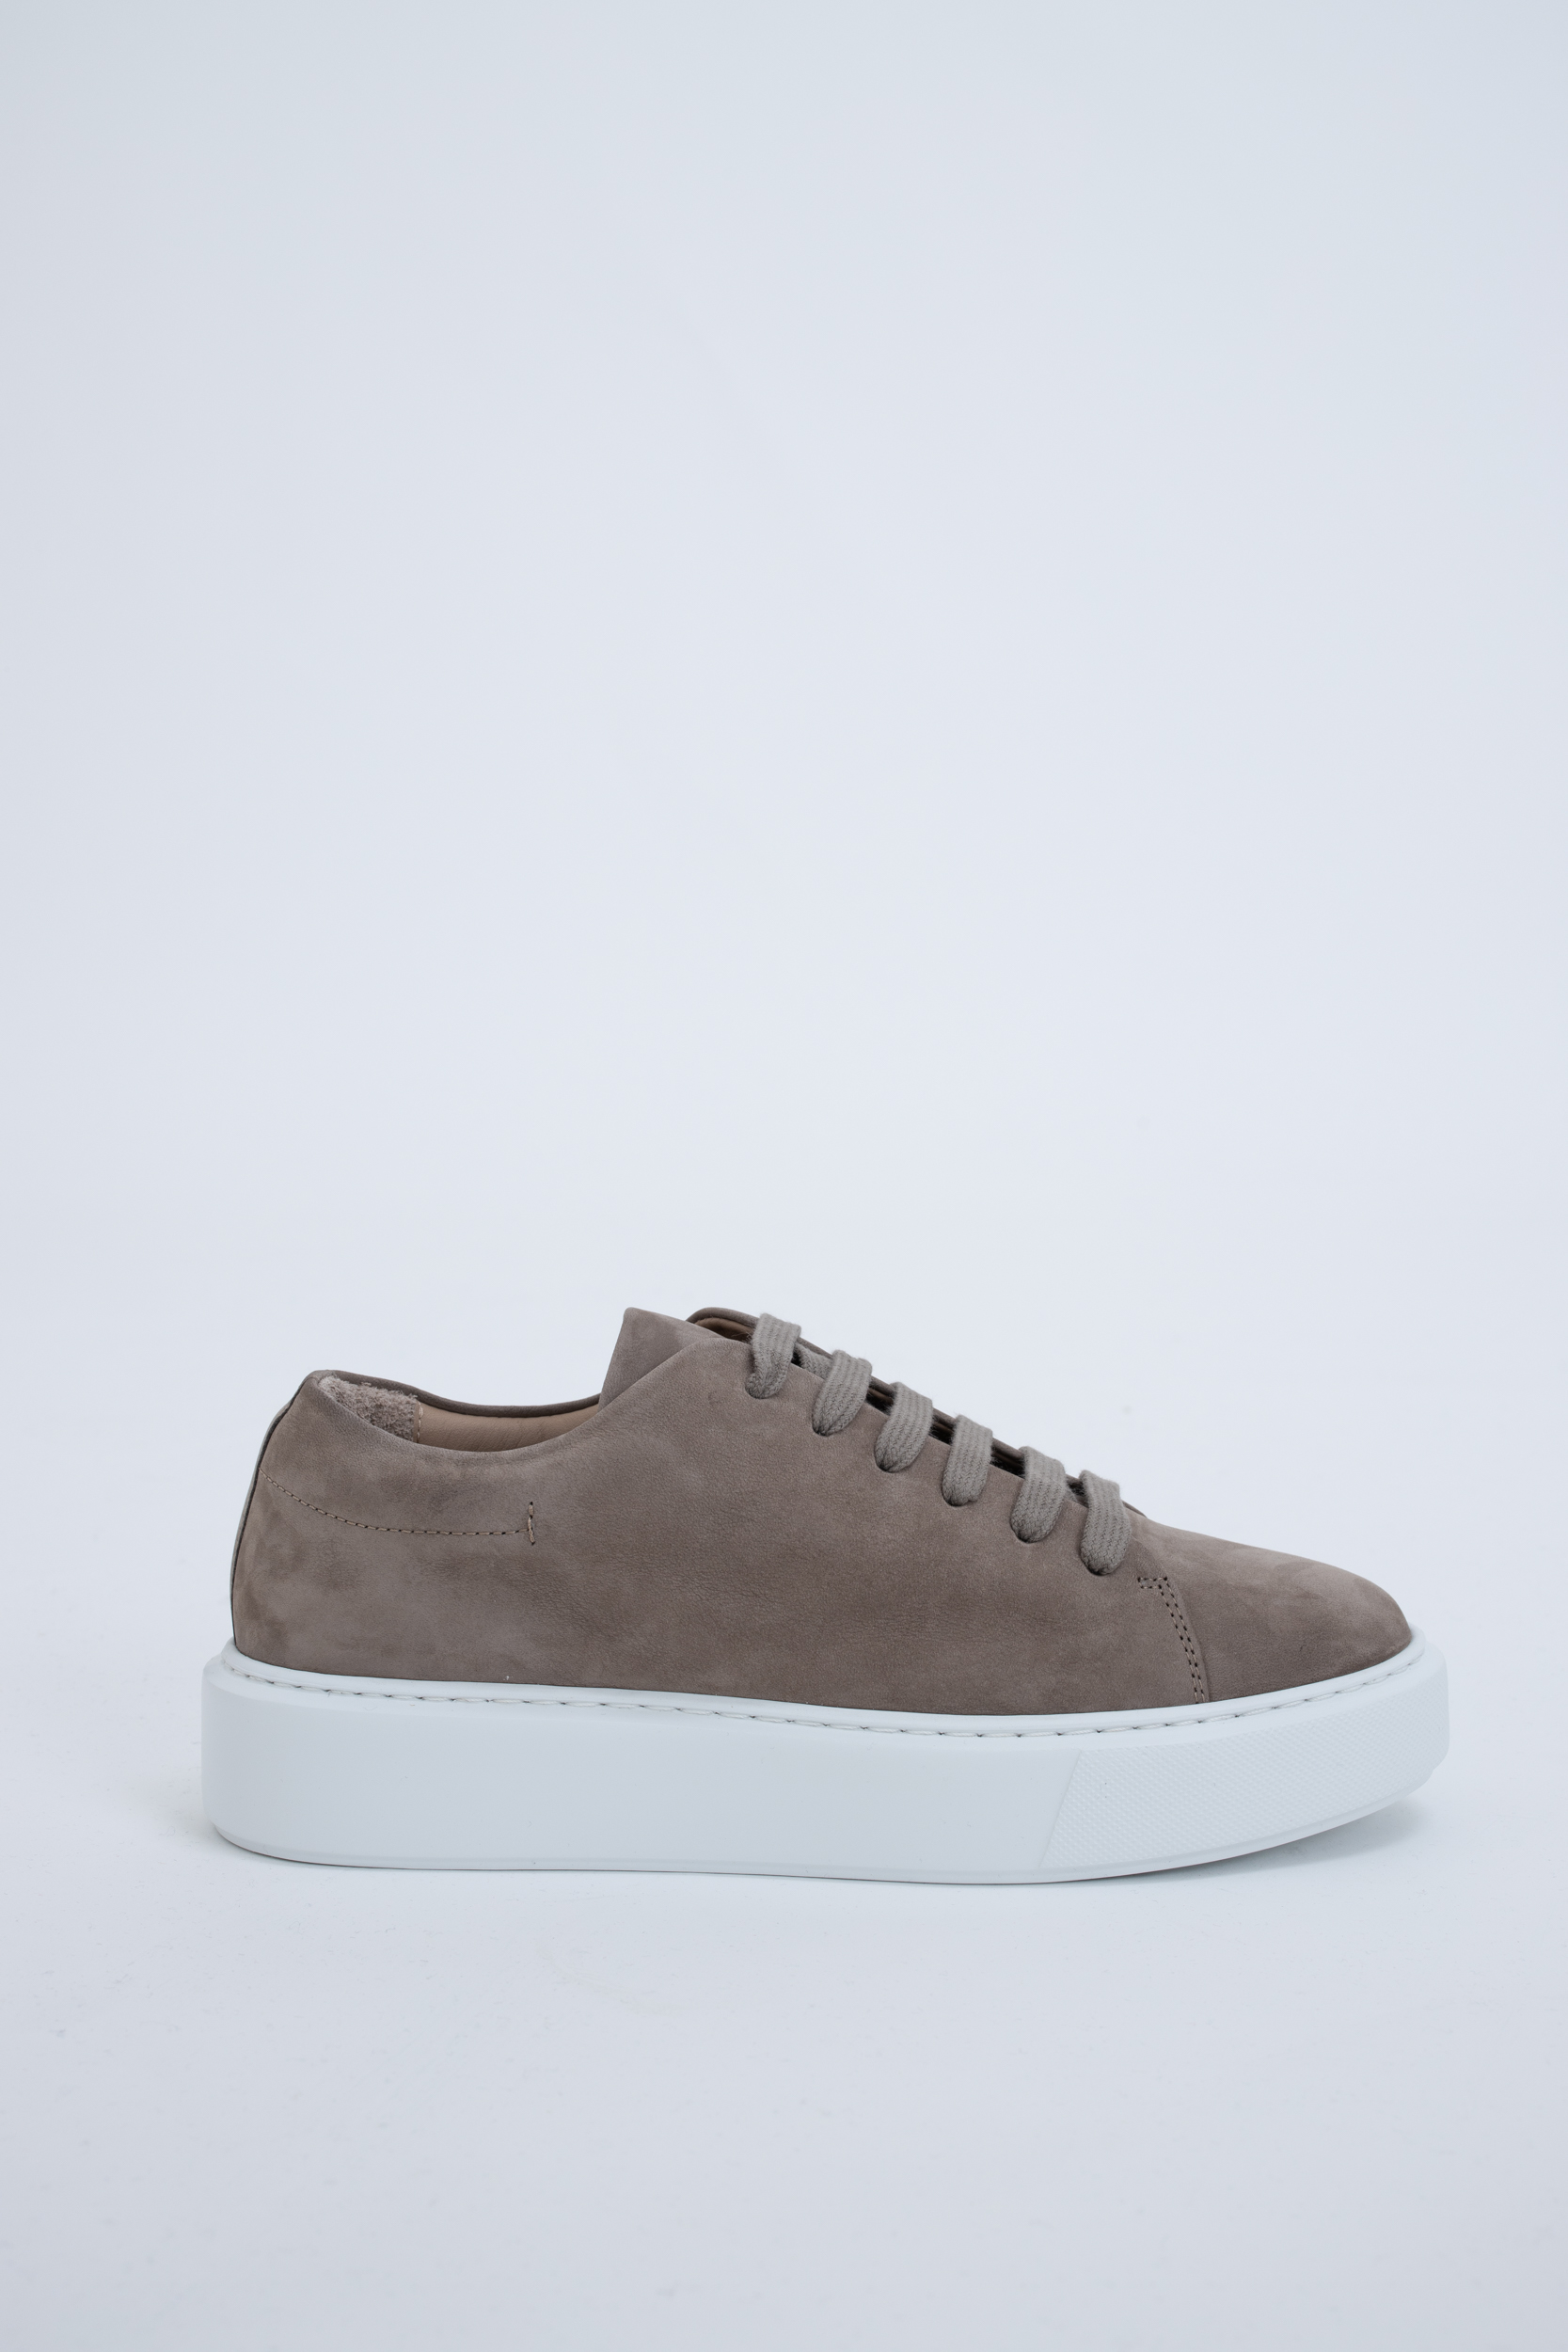 Sneaker CPH407 Taupe